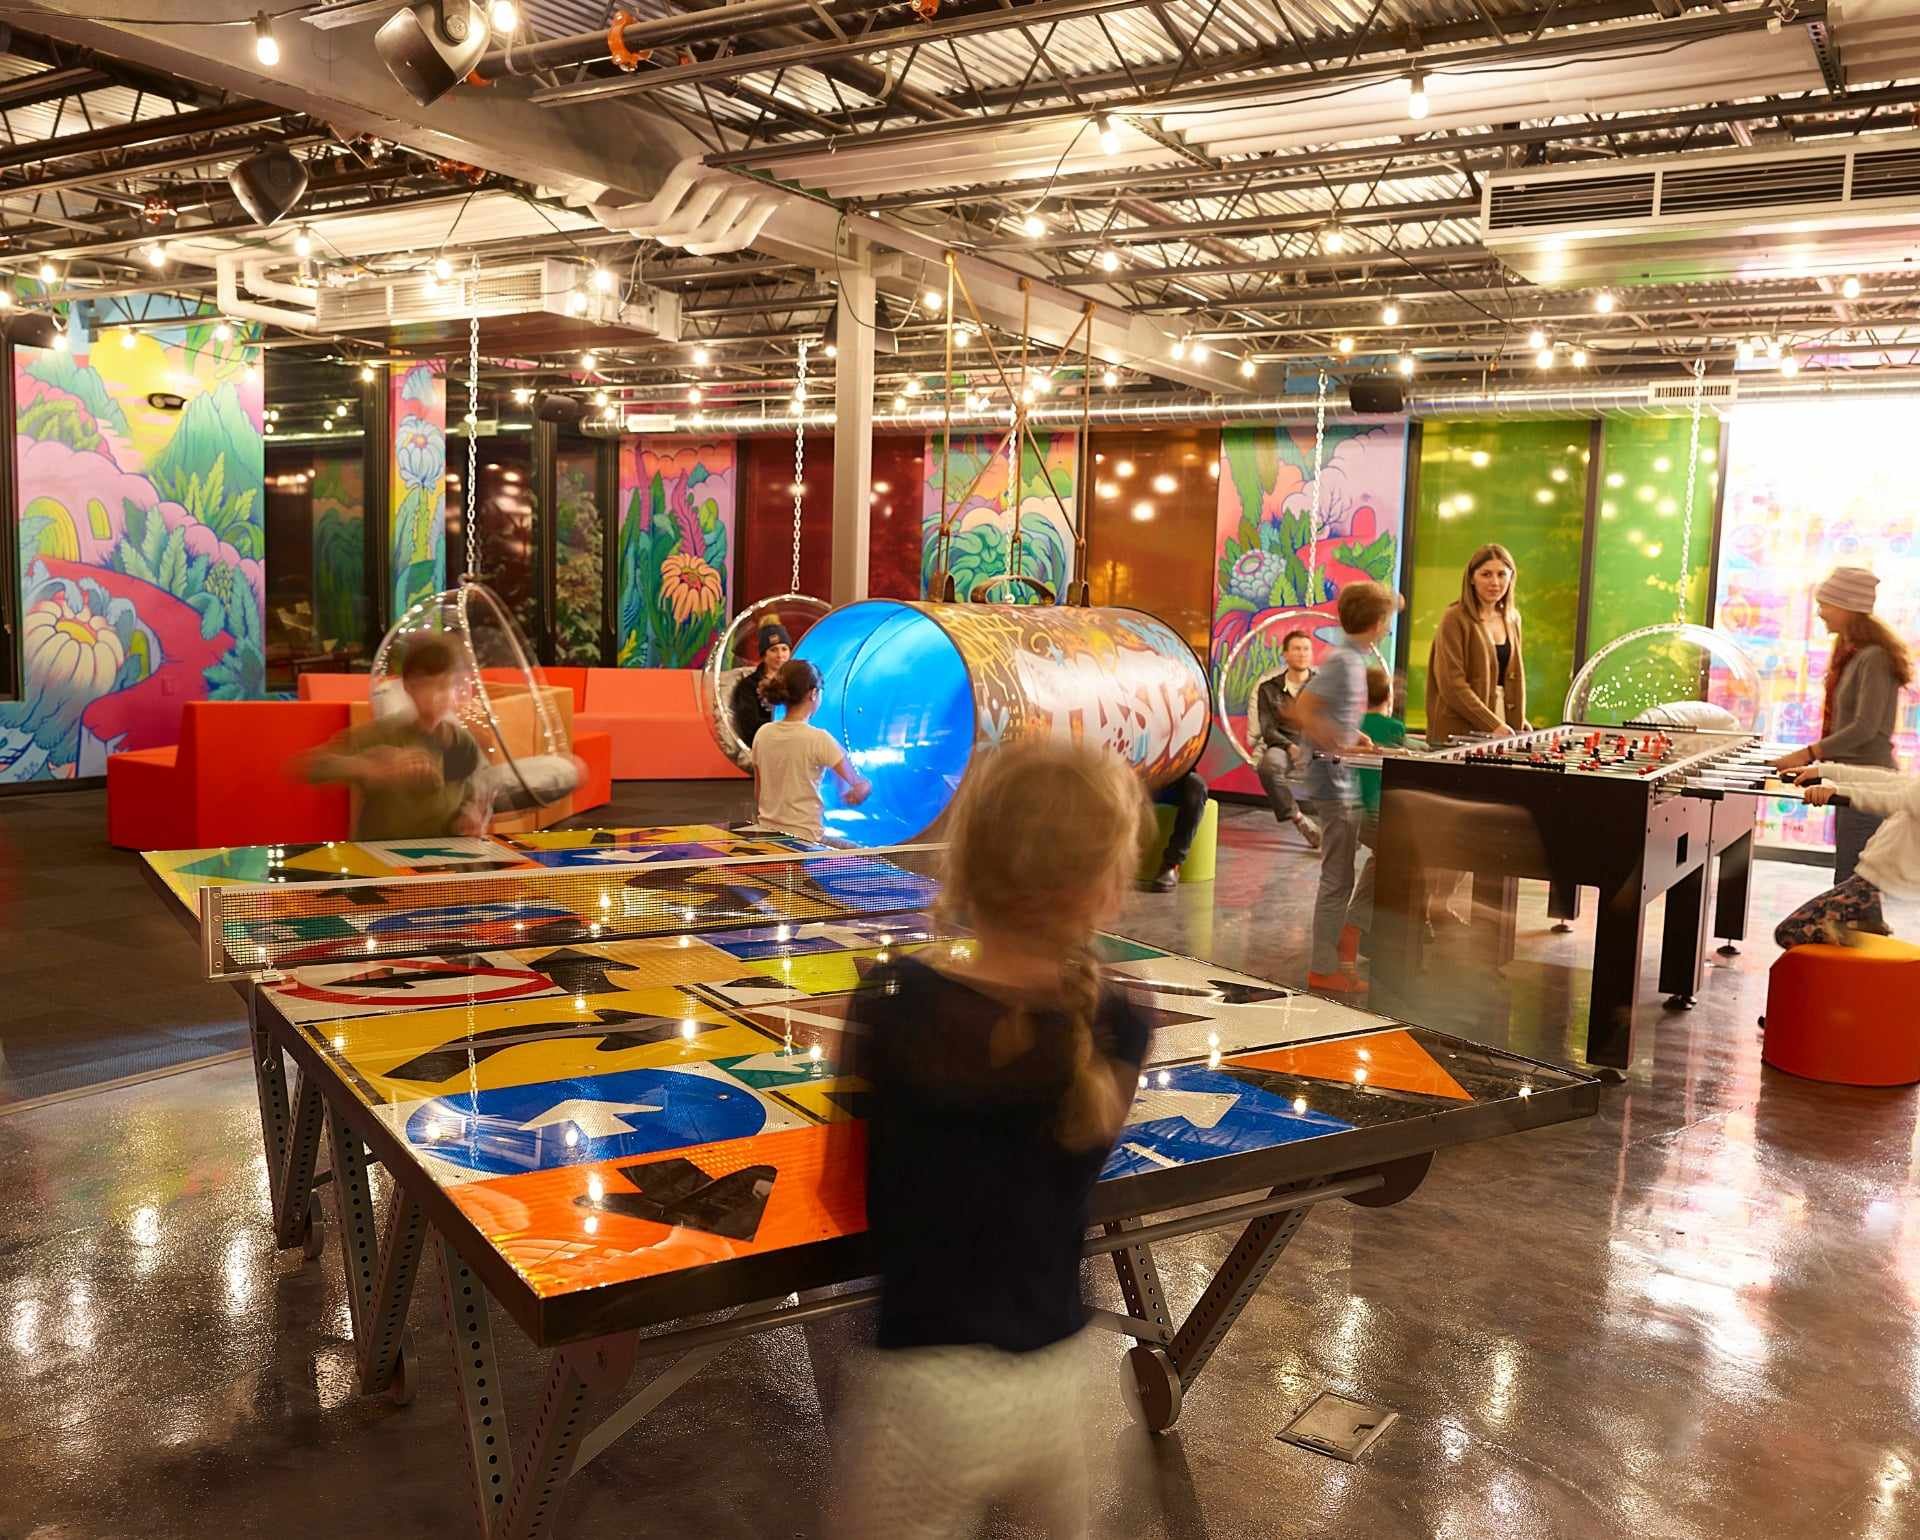 The Collective Game Lounge - This artistically inspired play space draws kids of all ages (parents included) with its reimagined arcade games, interactive art and a 130,000 ball pool.